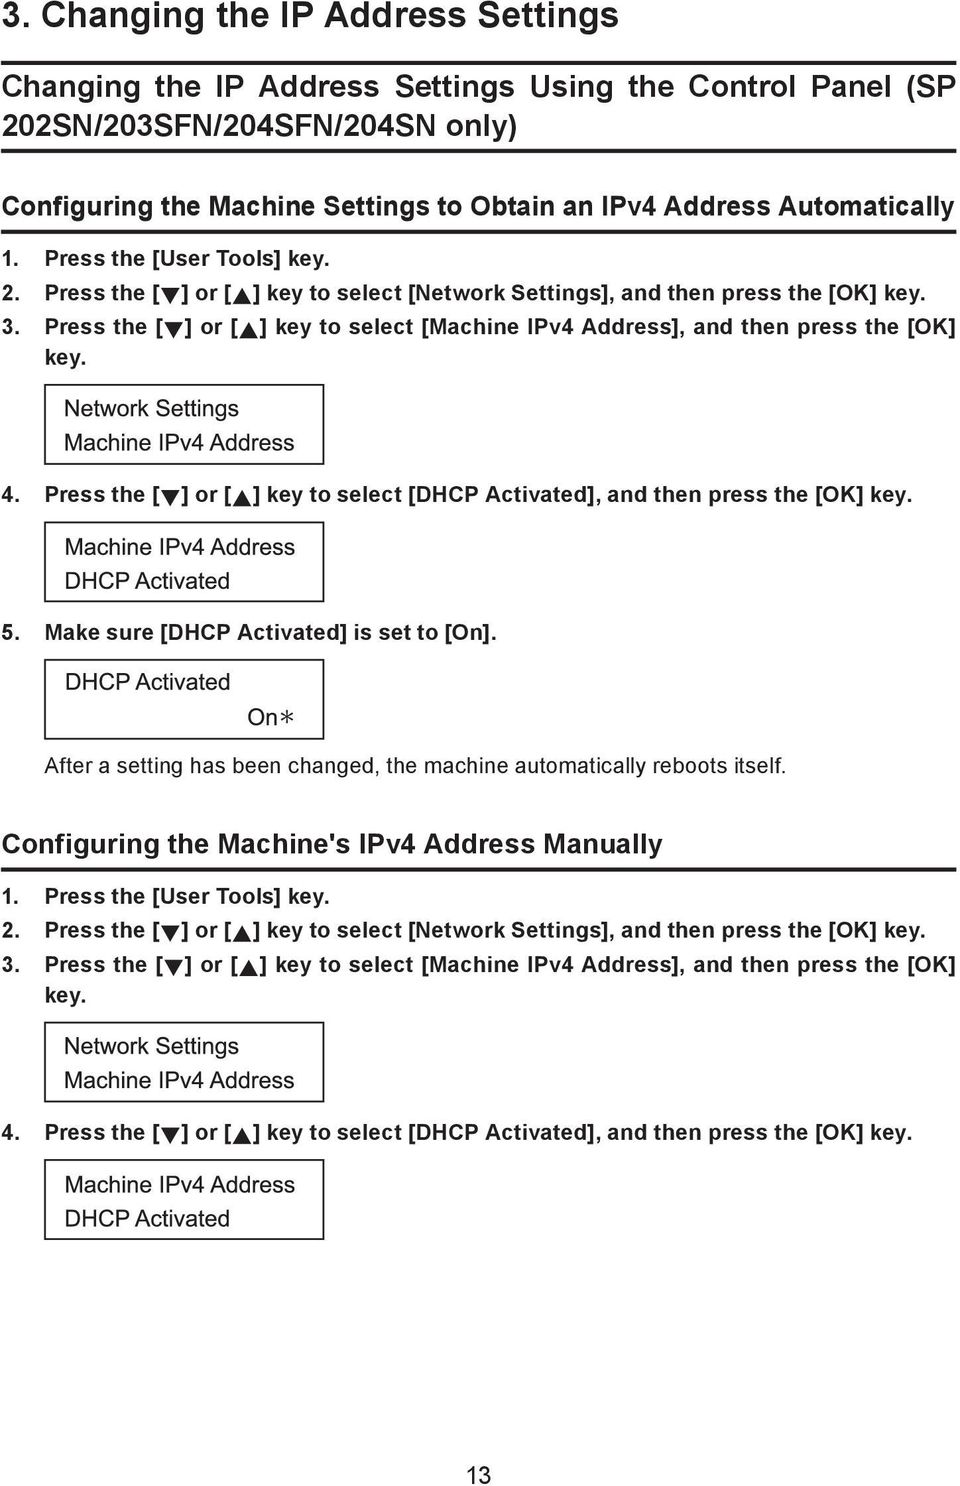 Press the [ ] or [ ] key to select [Machine IPv4 Address], and then press the [OK] key. 4. Press the [ ] or [ ] key to select [DHCP Activated], and then press the [OK] key. 5.